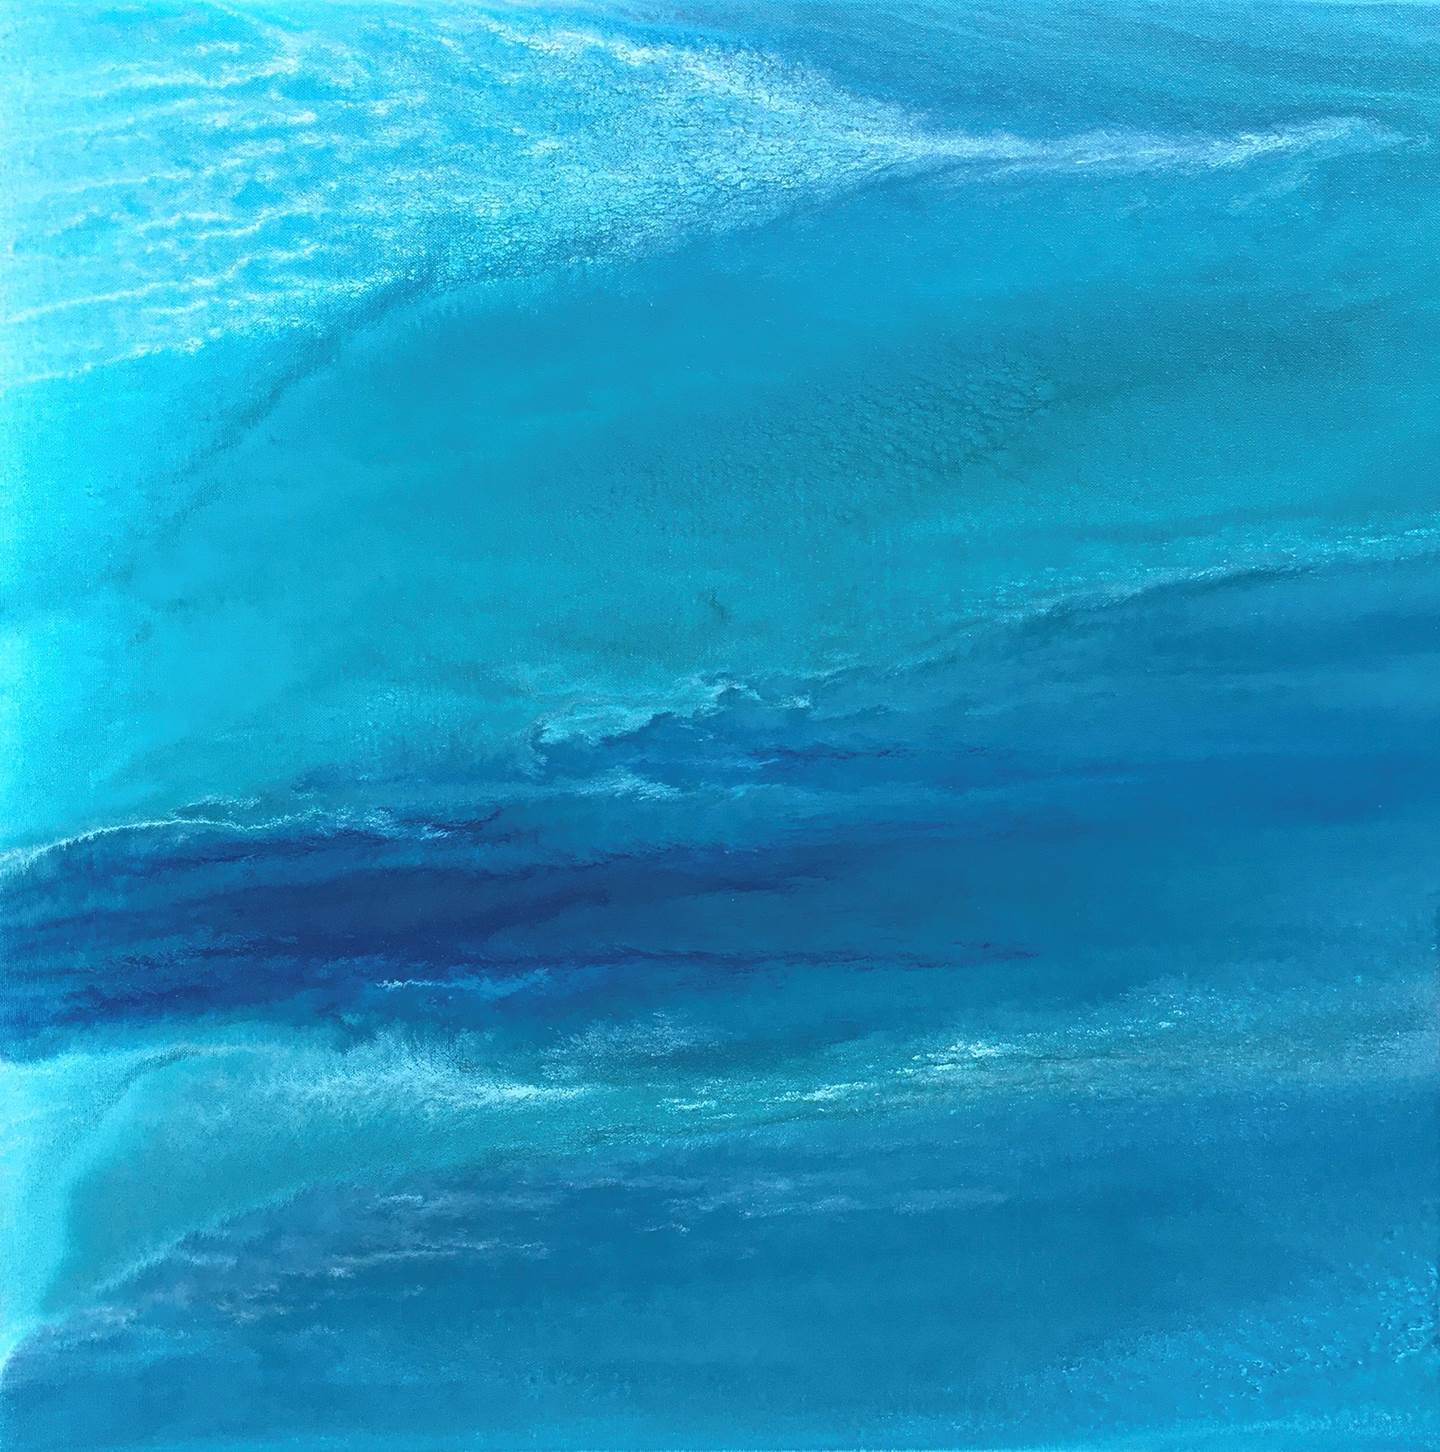 """Oceano Índico (Lohifushi, Maldivas)"", original Abstract Mixed Technique Painting by Catarina Machado"